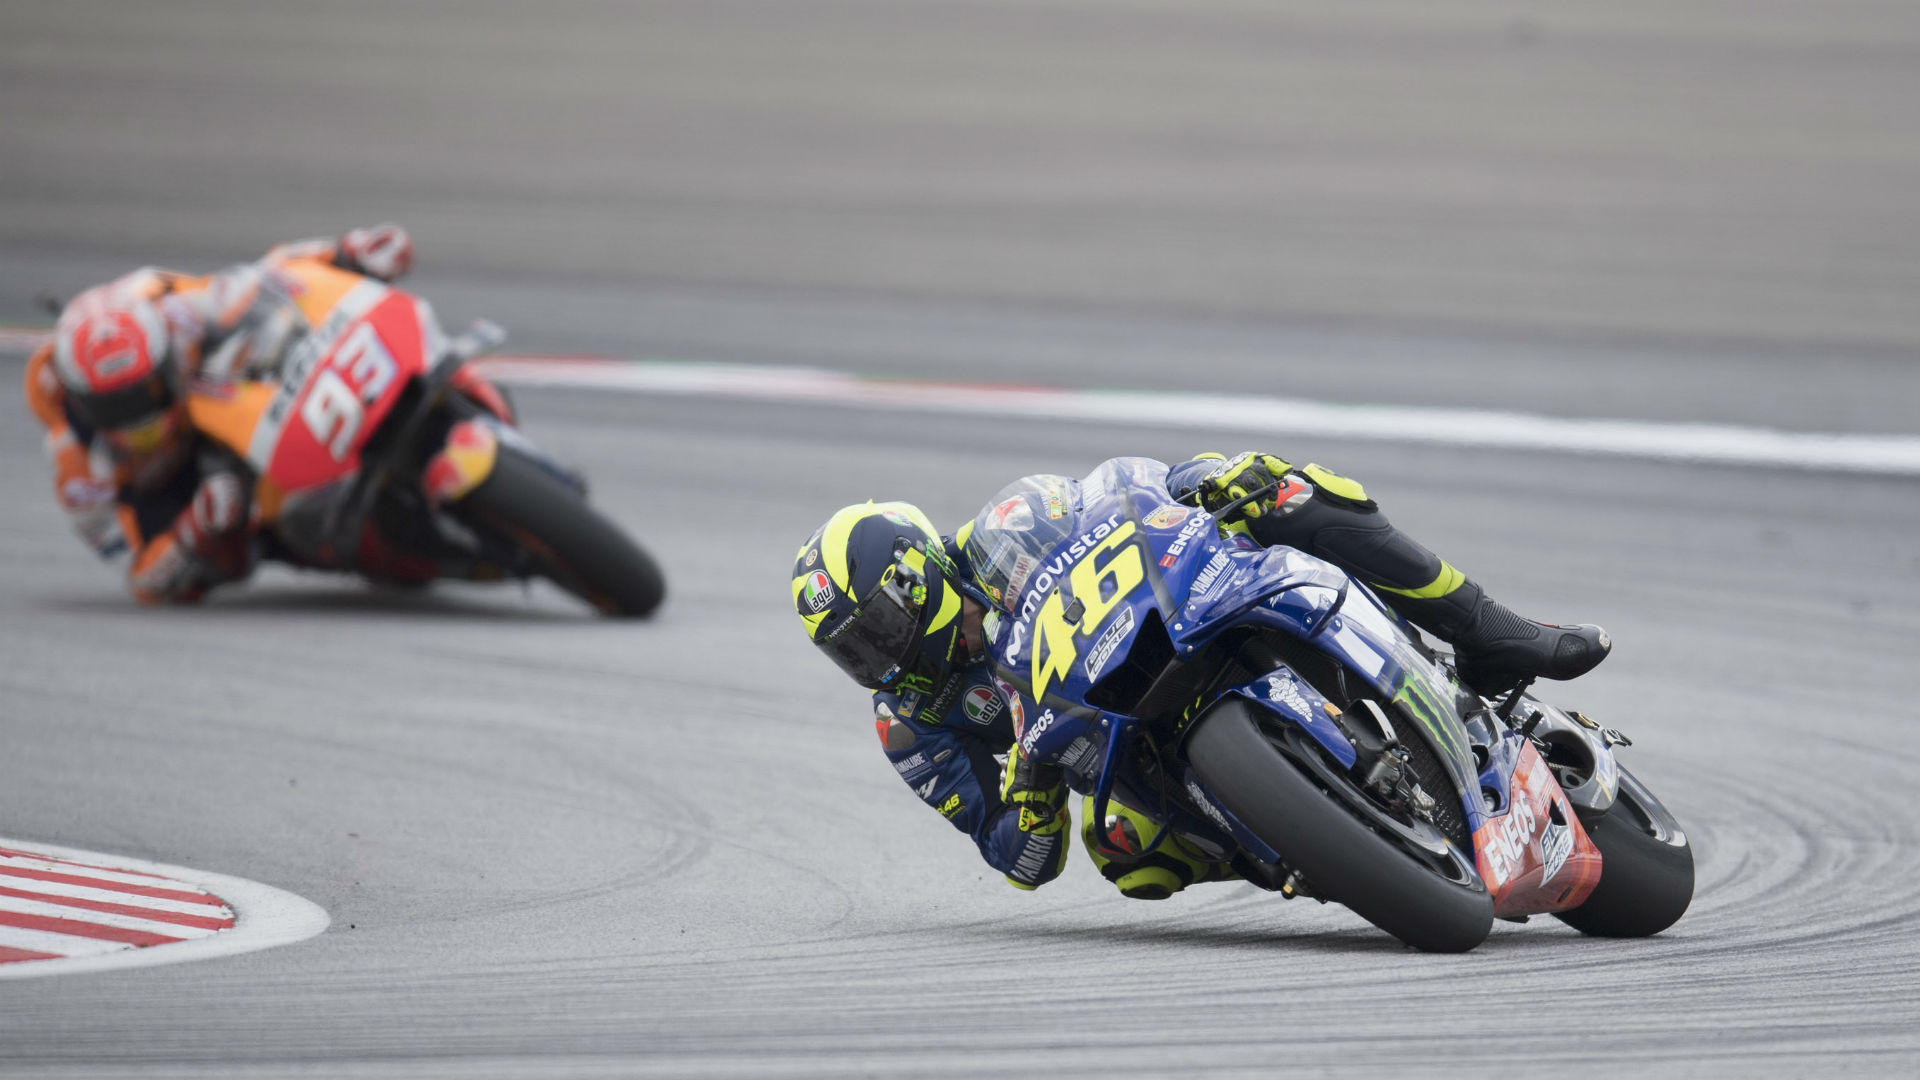 Rossi devastated by Malaysia crash